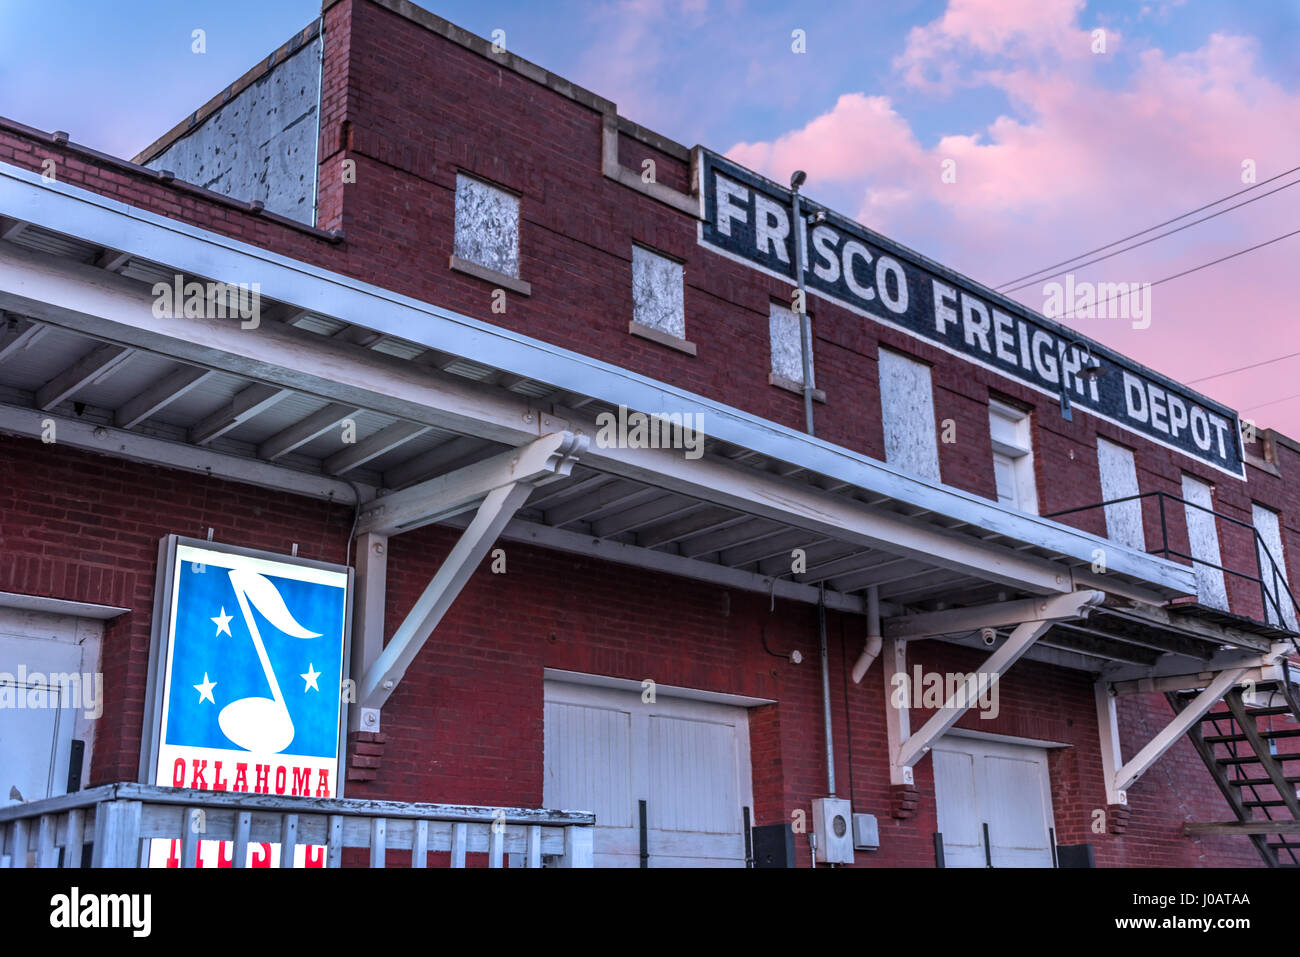 Muskogee, Oklahoma's Frisco Freight Depot, home of the Oklahoma Music Hall of Fame. (USA) Stock Photo